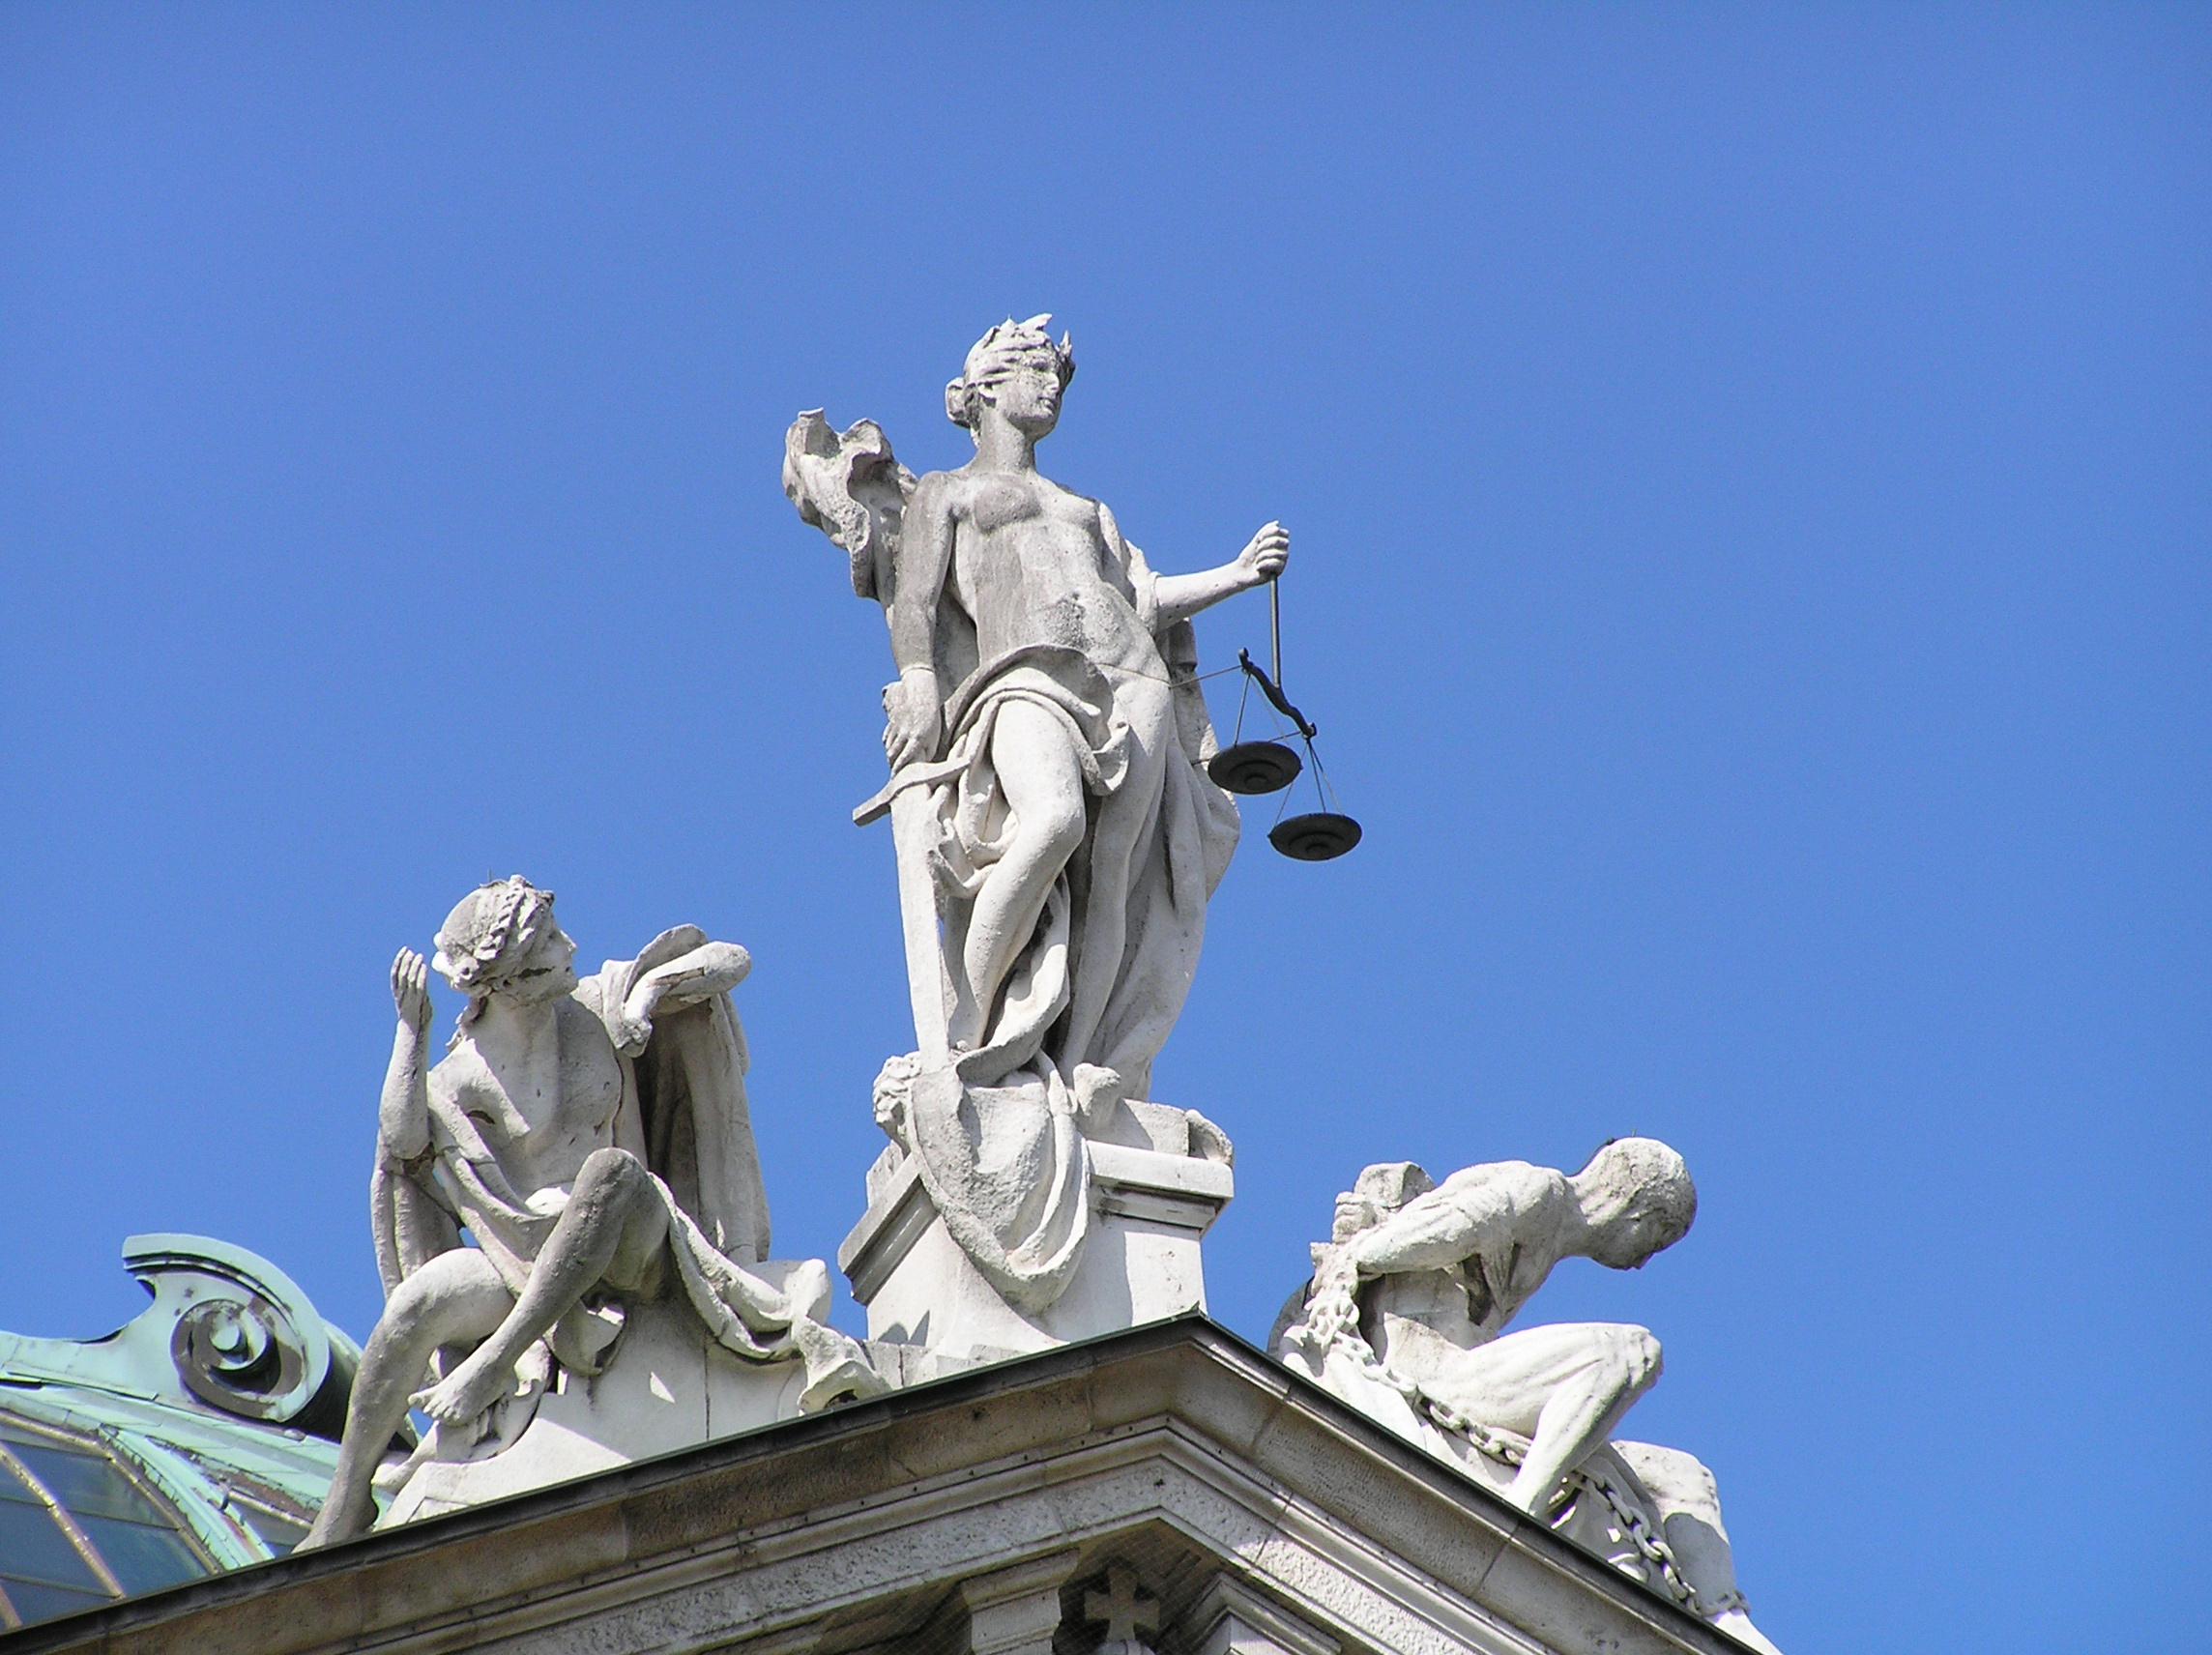 https://upload.wikimedia.org/wikipedia/commons/7/7f/Justitia_Justizpalast_Muenchen.jpg